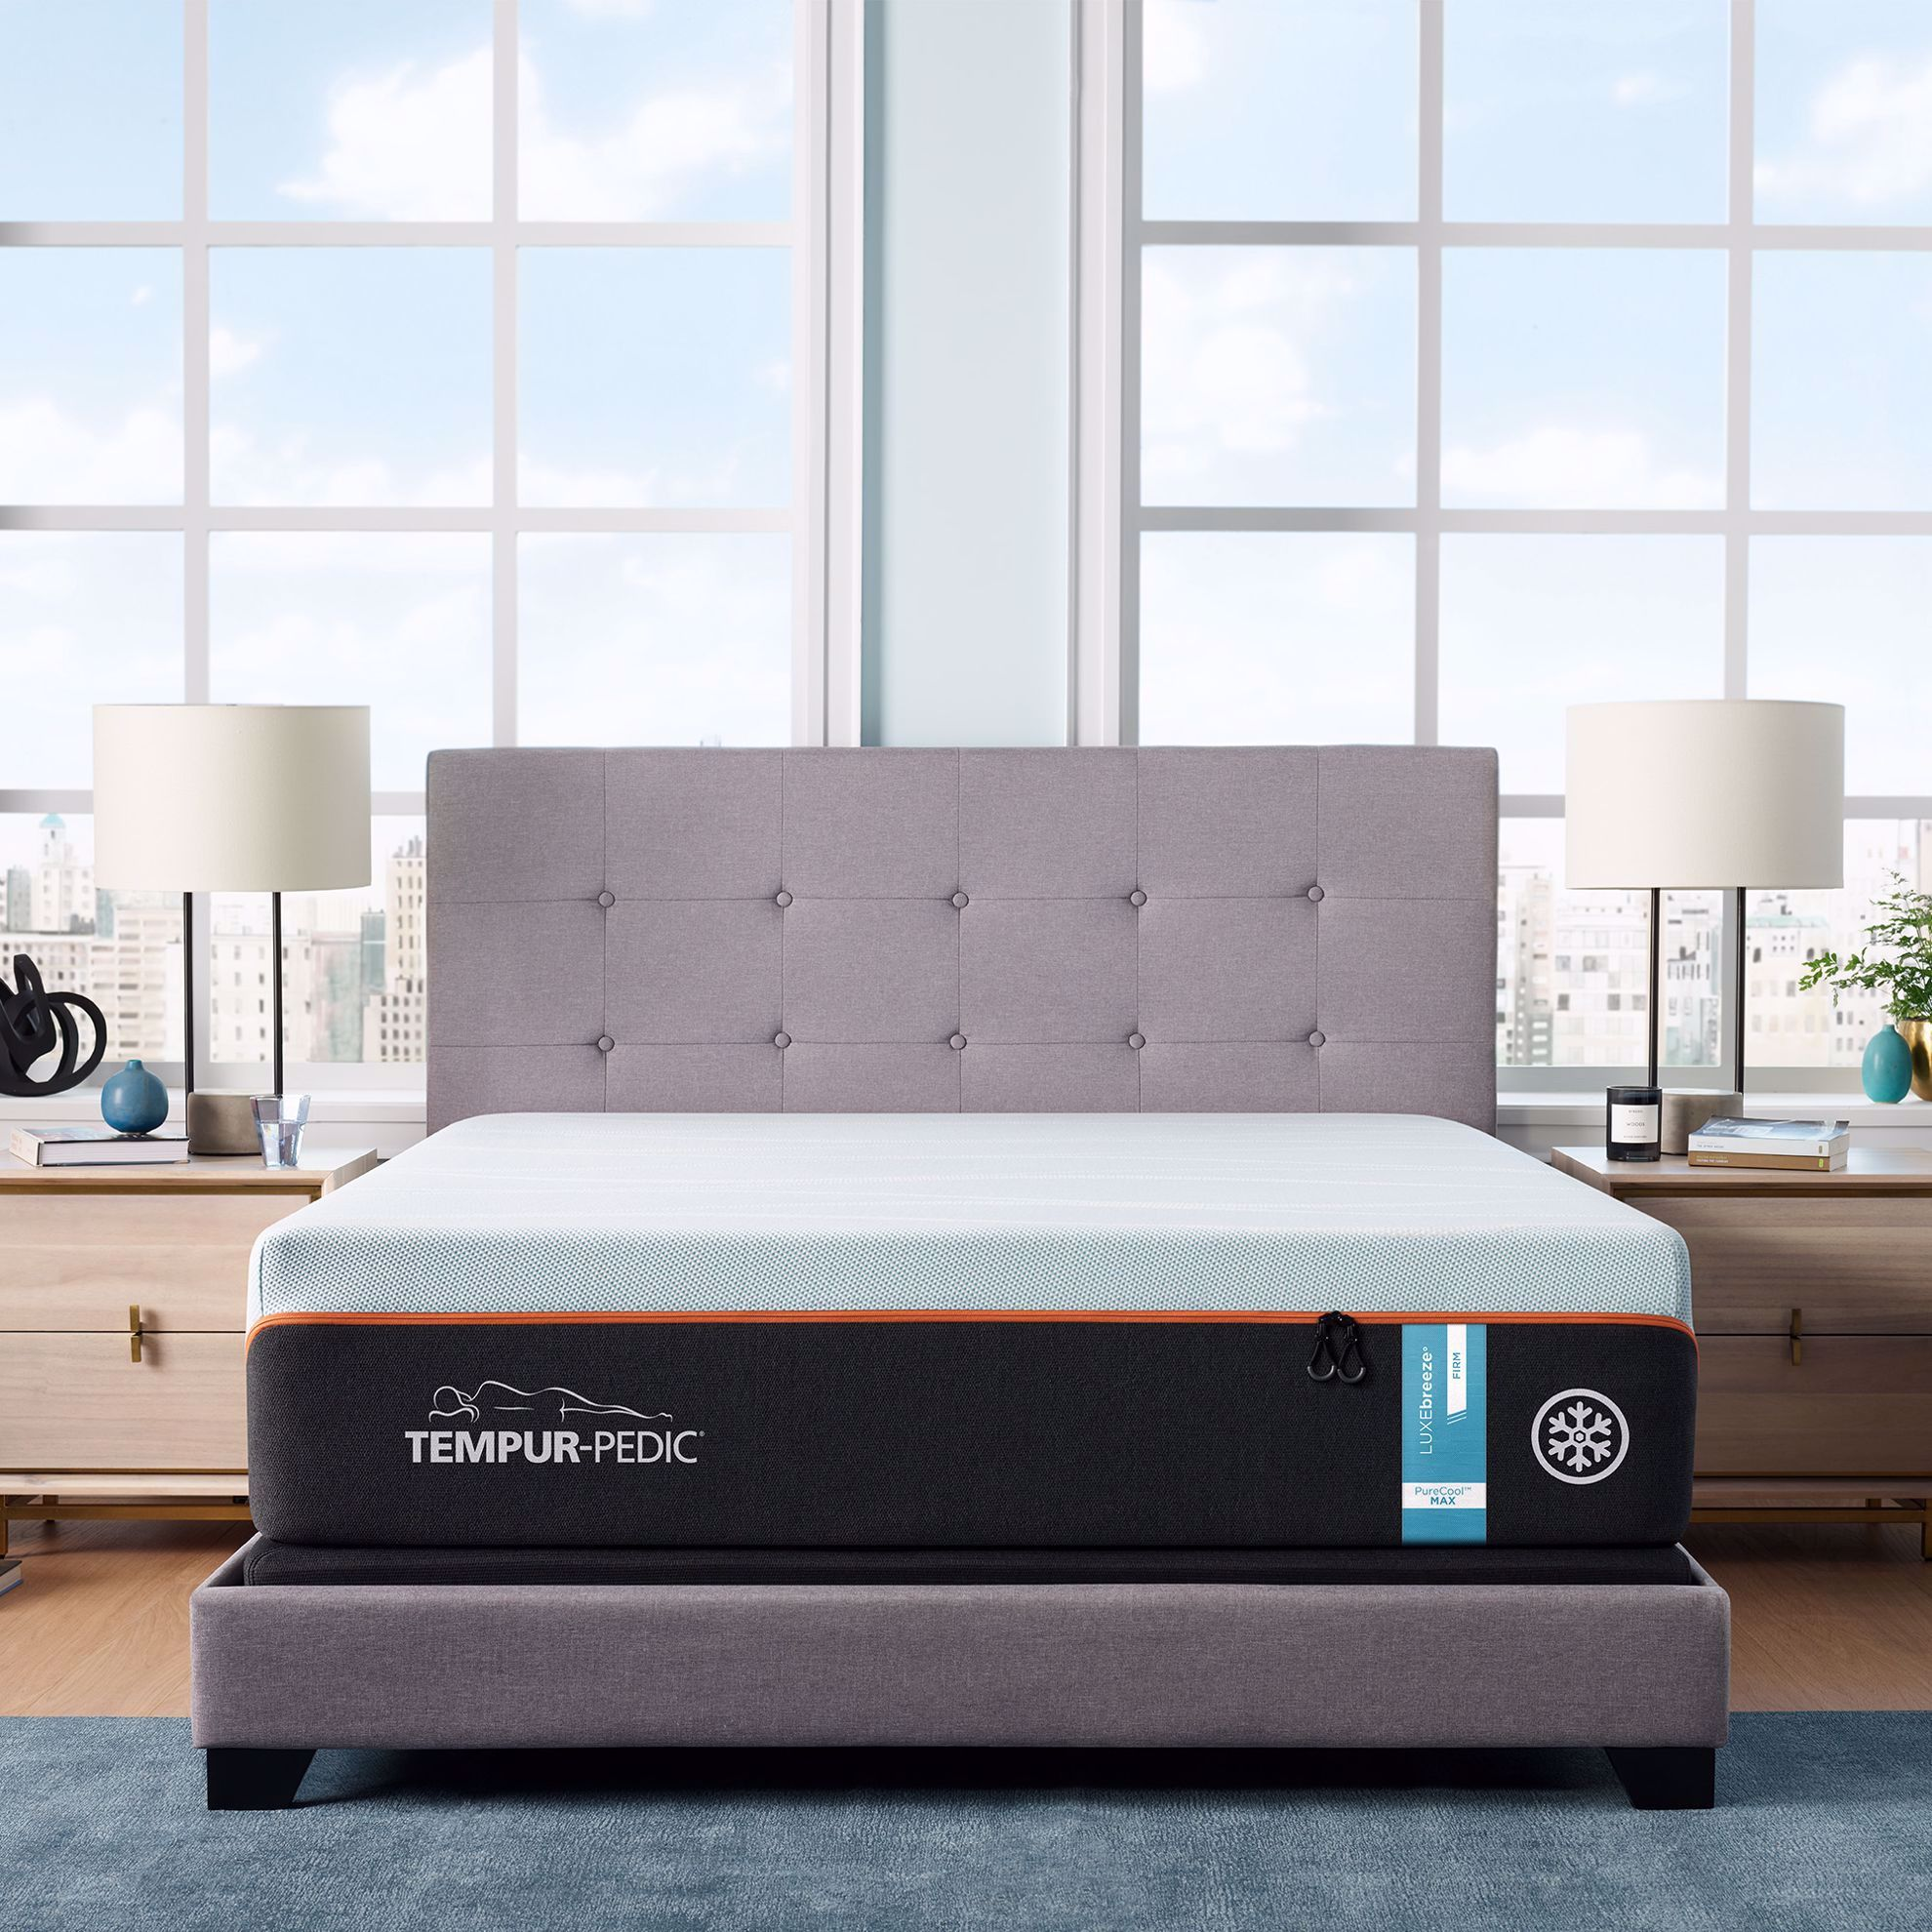 Picture of Tempur-Pedic Luxe Breeze Firm Twin XL Mattress